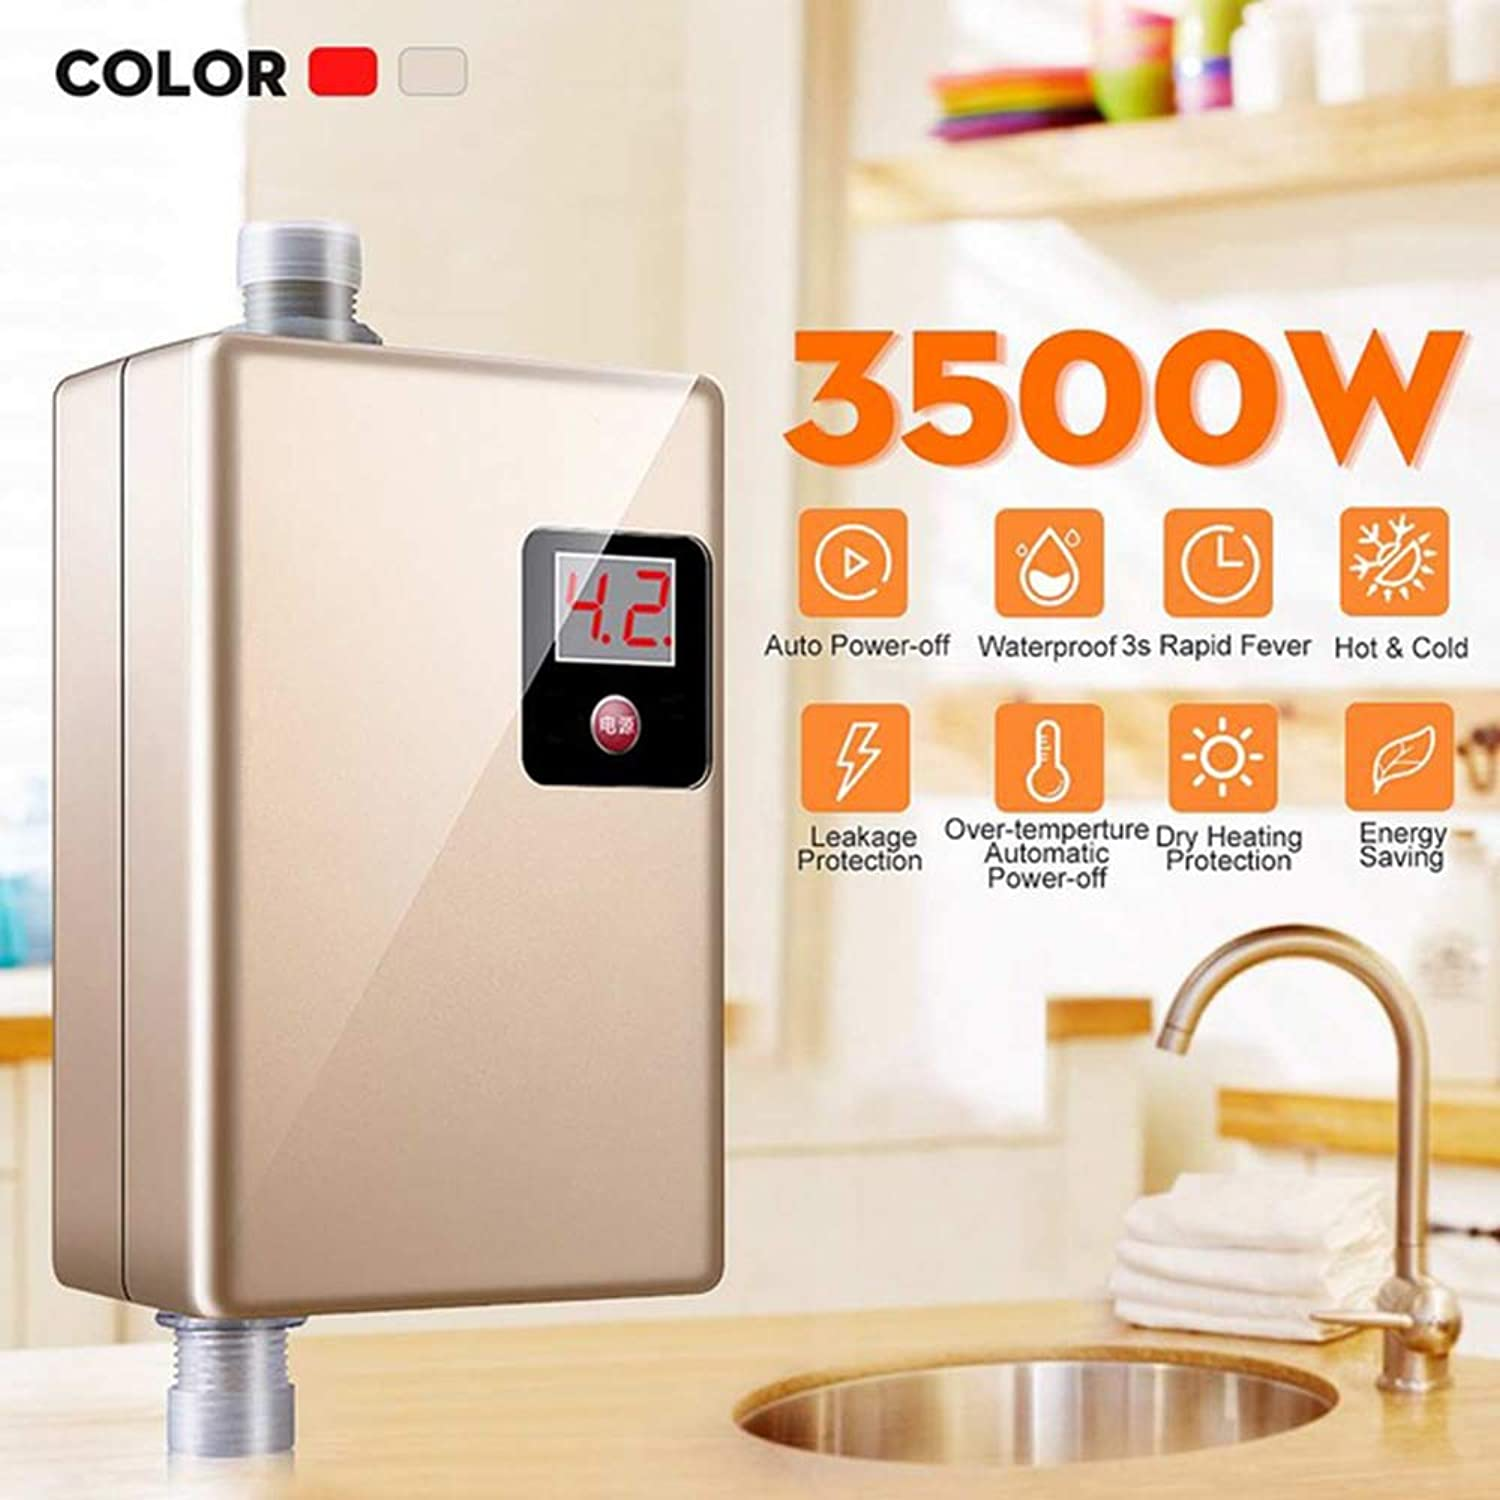 220V 3500W Mini Electric Tankless Instant Hot Water Heater Kitchen Faucet Tap Heating Instantaneous Waterproof Fast Hot Shower,gold